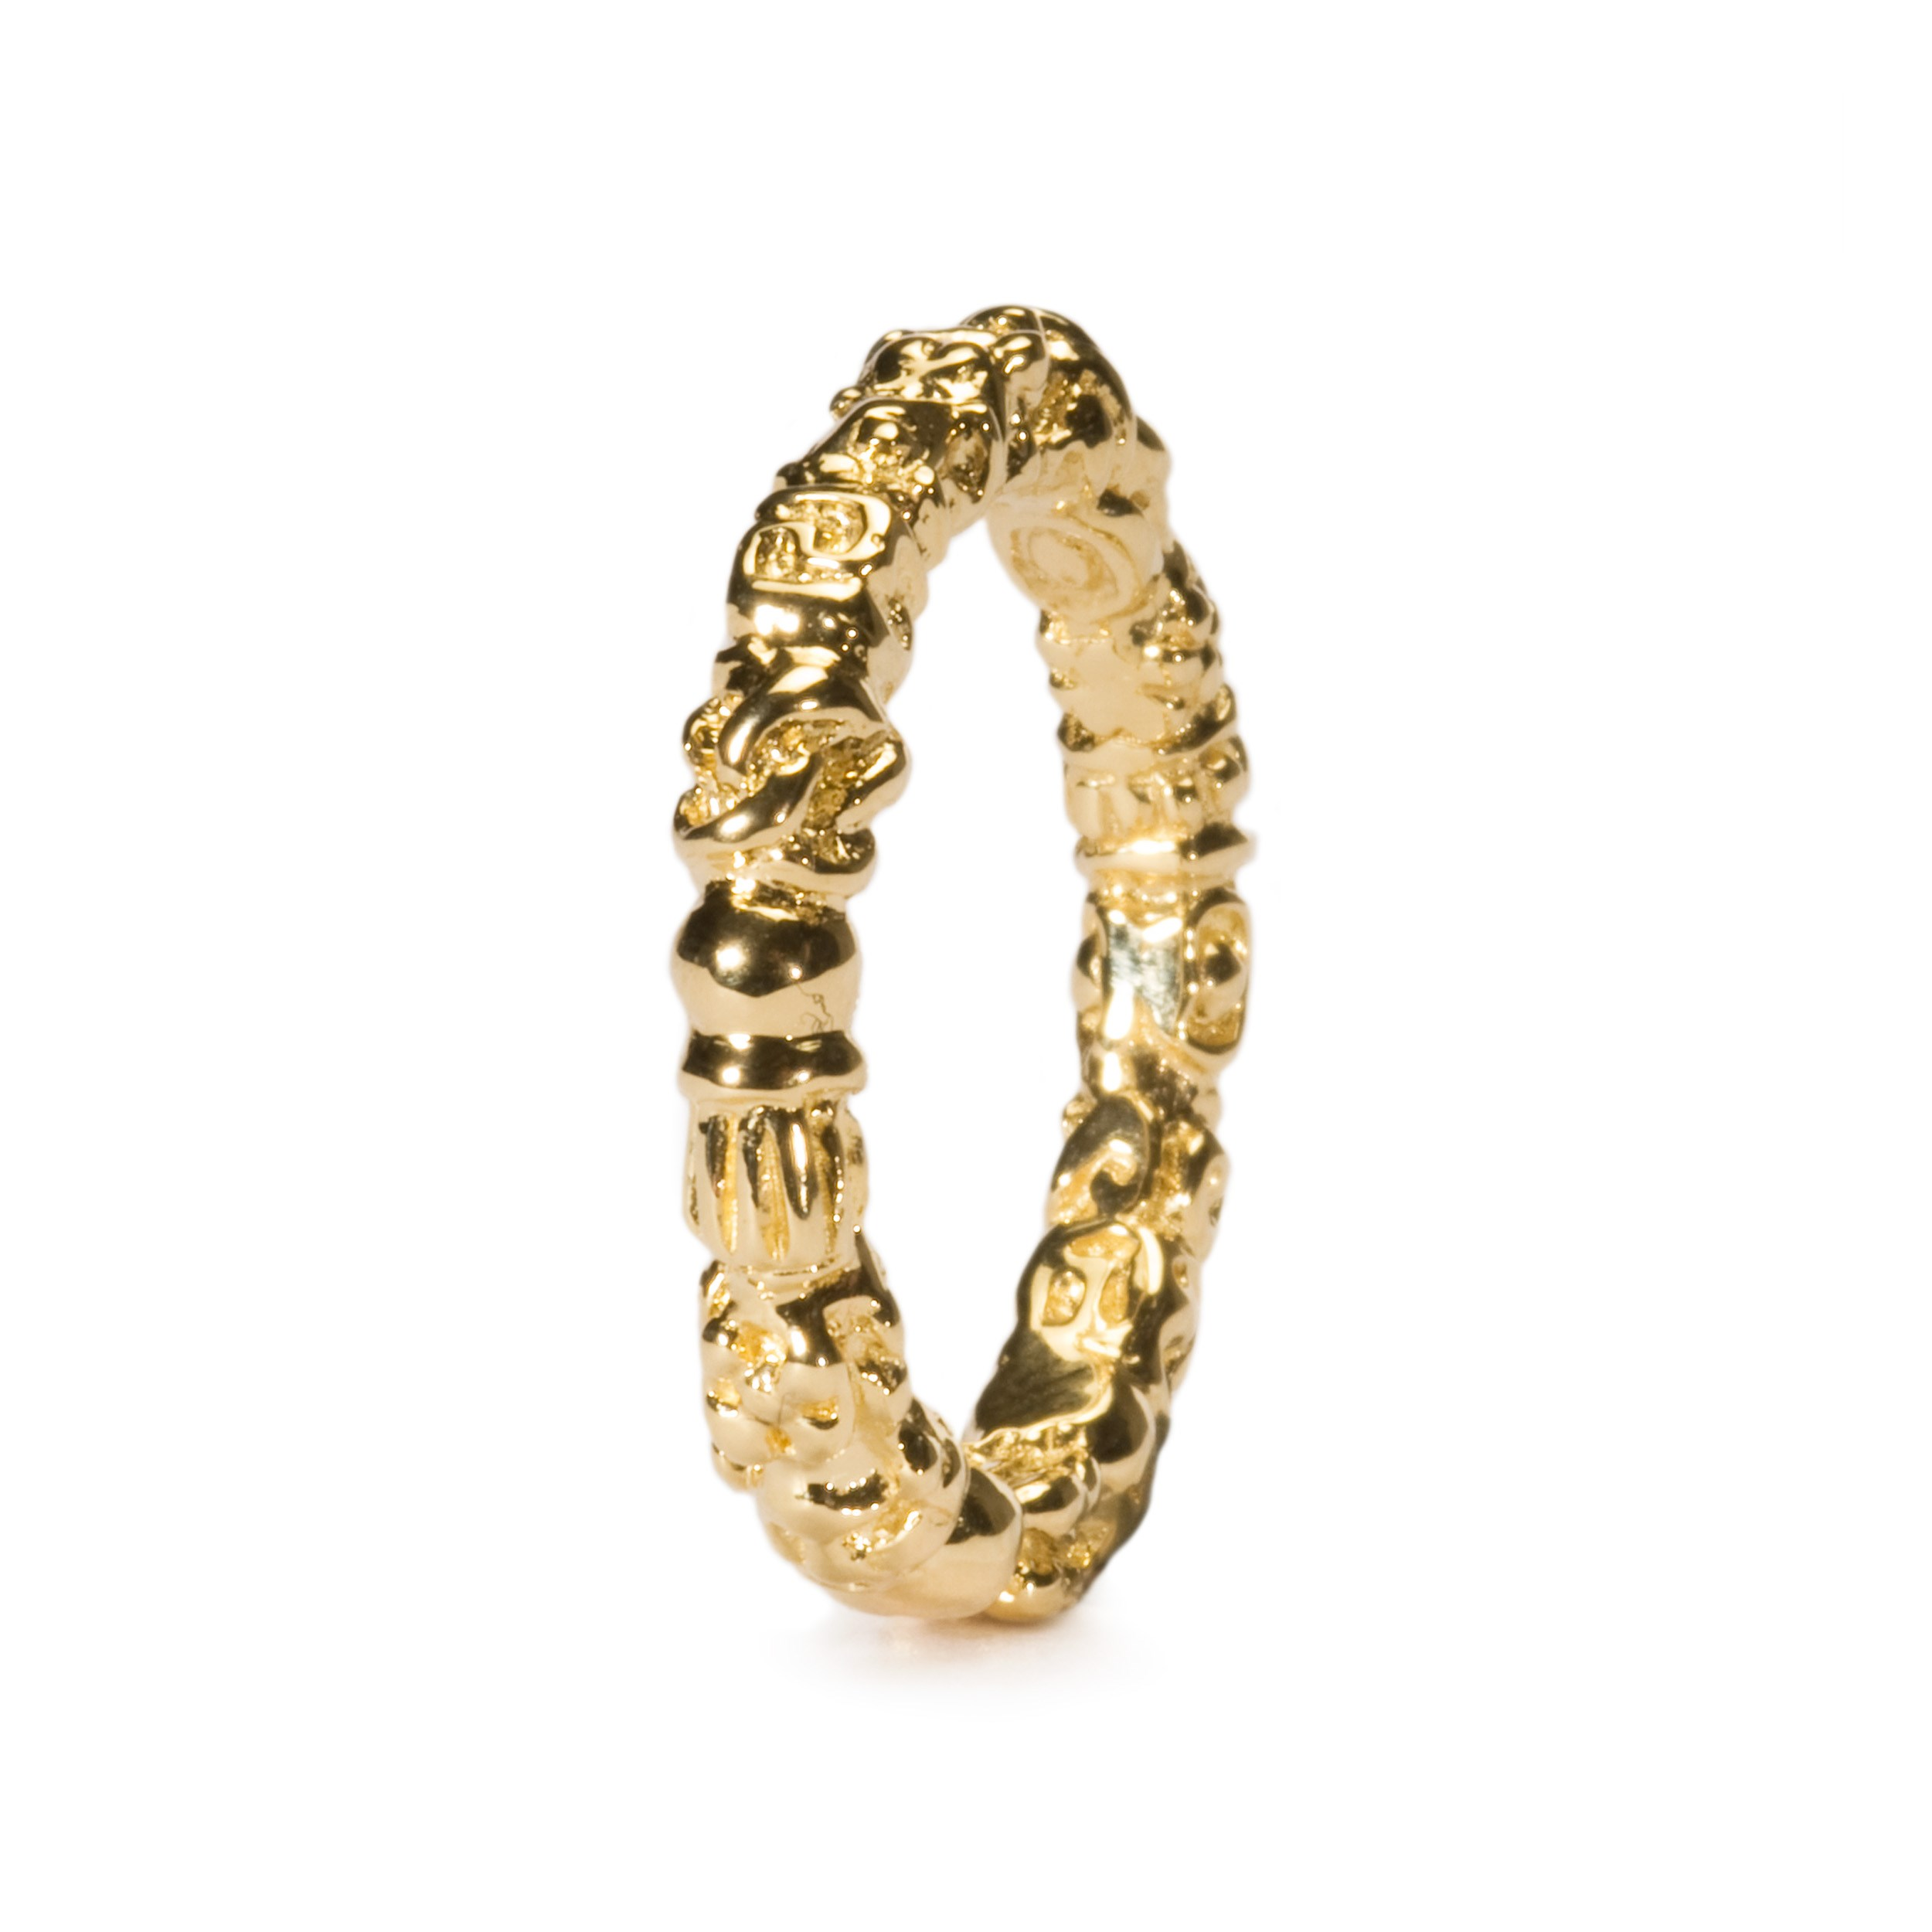 images png earnings imgs download jewelry gold ring free